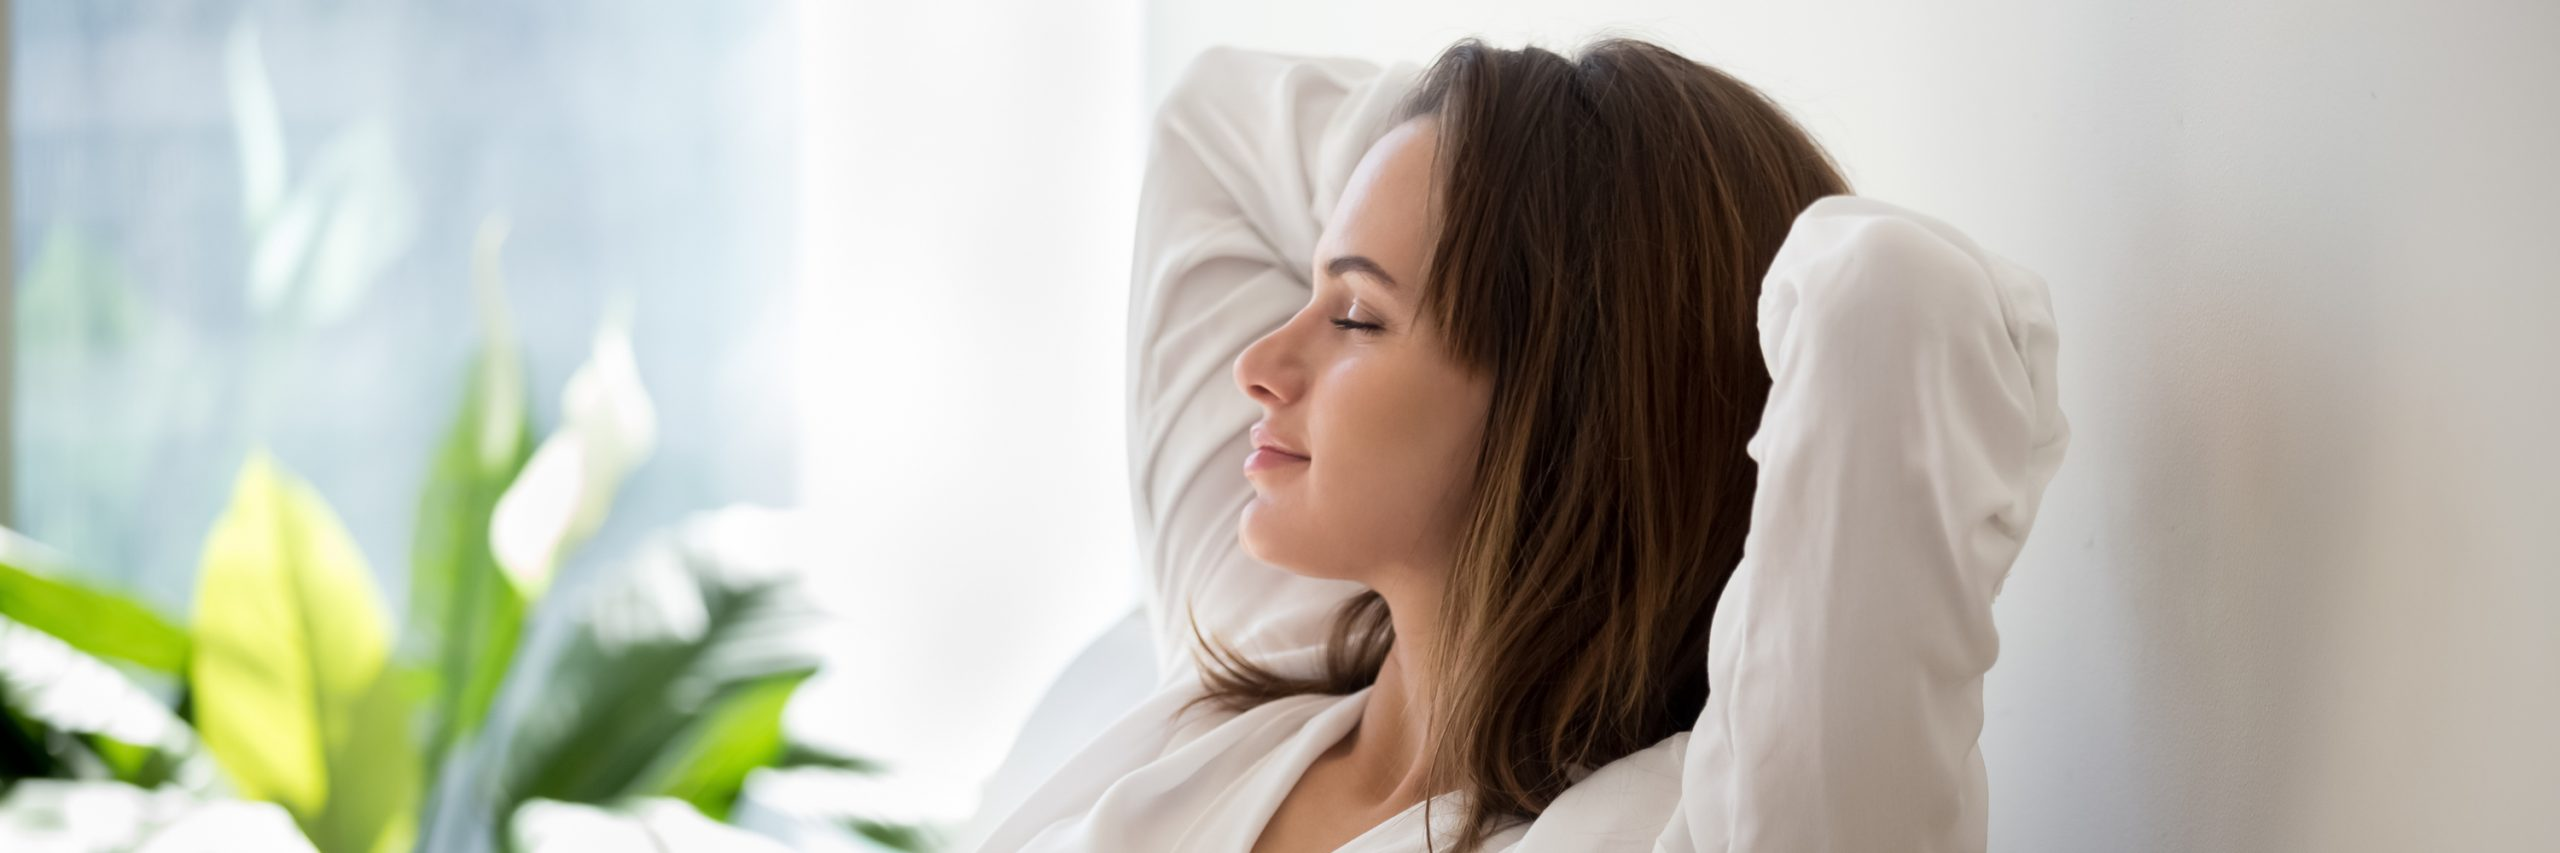 A woman had TMJ therapy and is reveling in the relief in her home. She's wearing a white sweater and resting the back of her head on her hands.